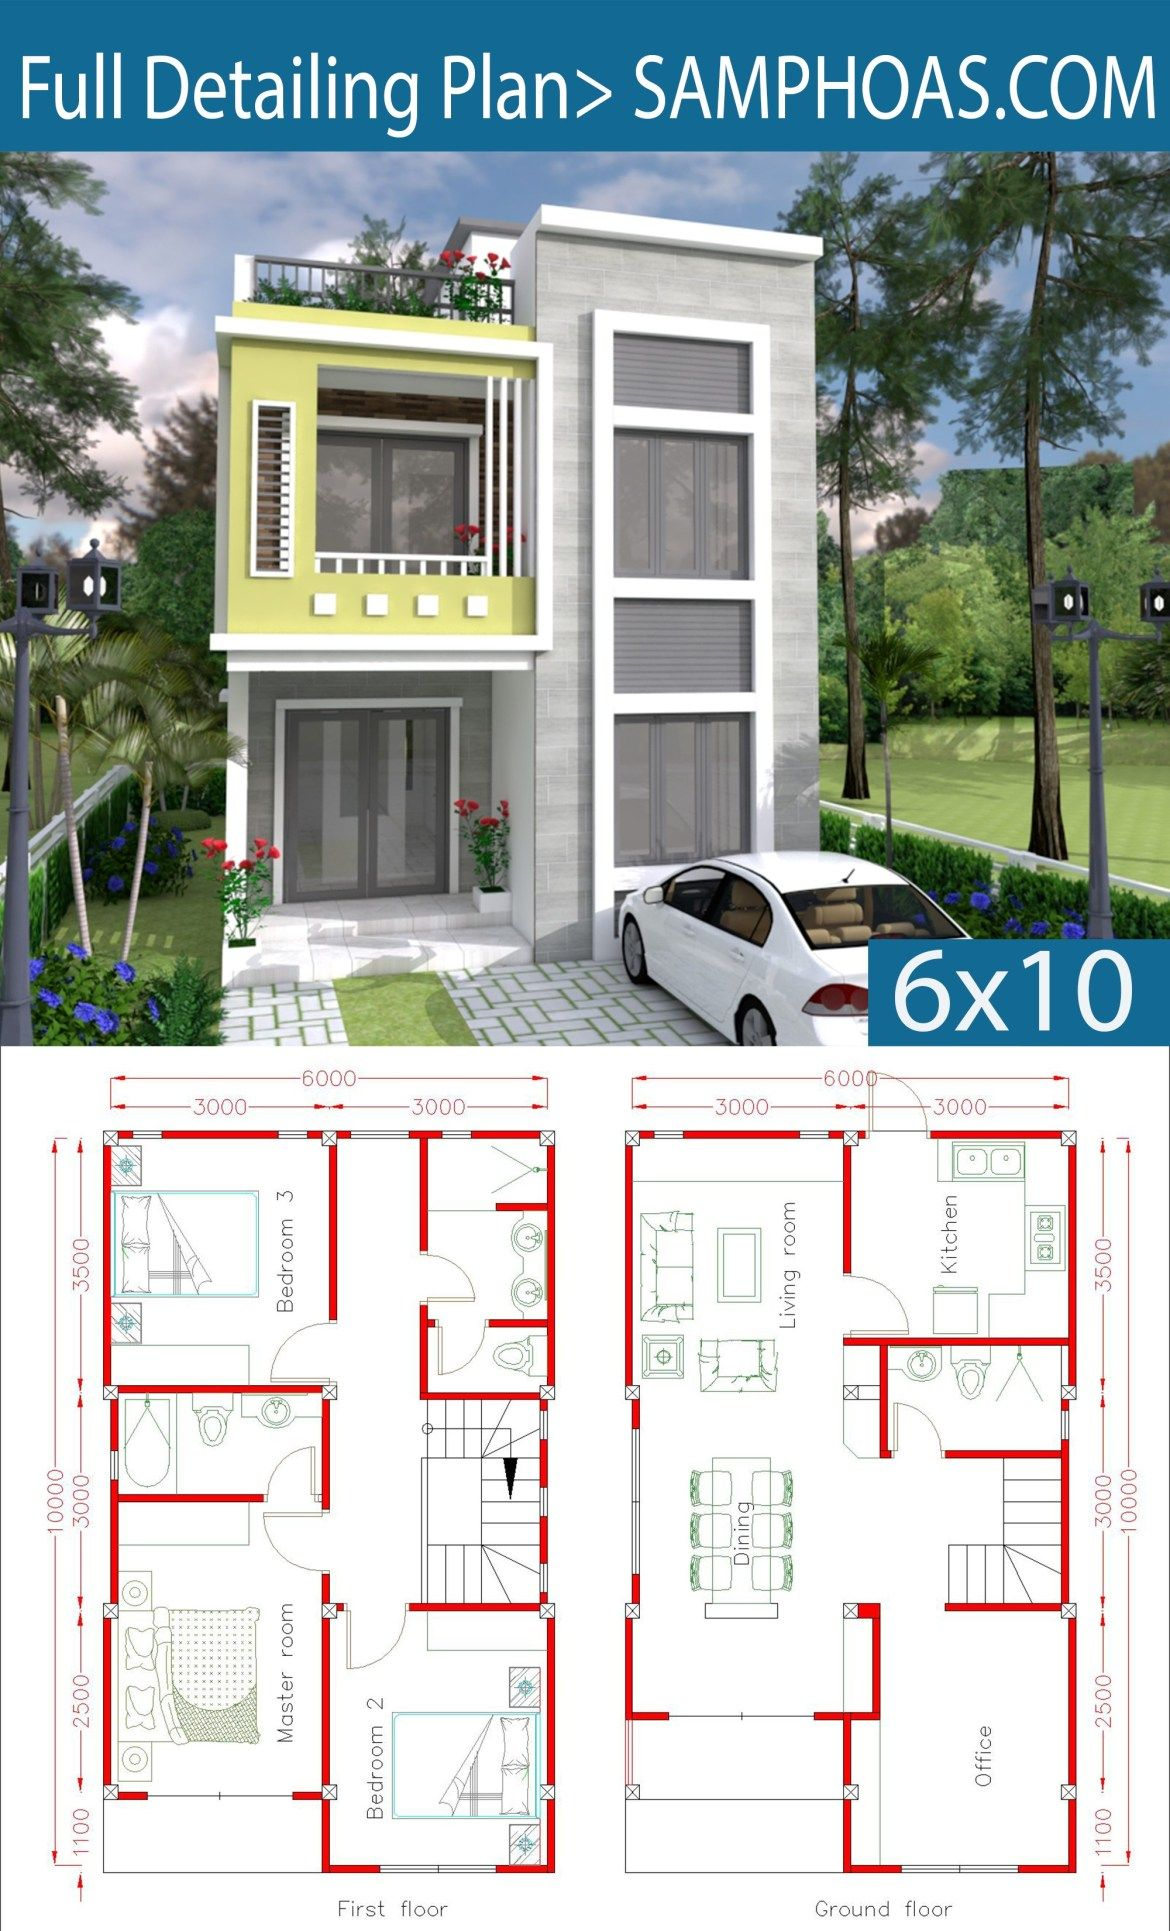 Home Design Plan 6x10m With 3 Bedrooms Samphoas Plansearch Duplex House Plans House Plans Model House Plan